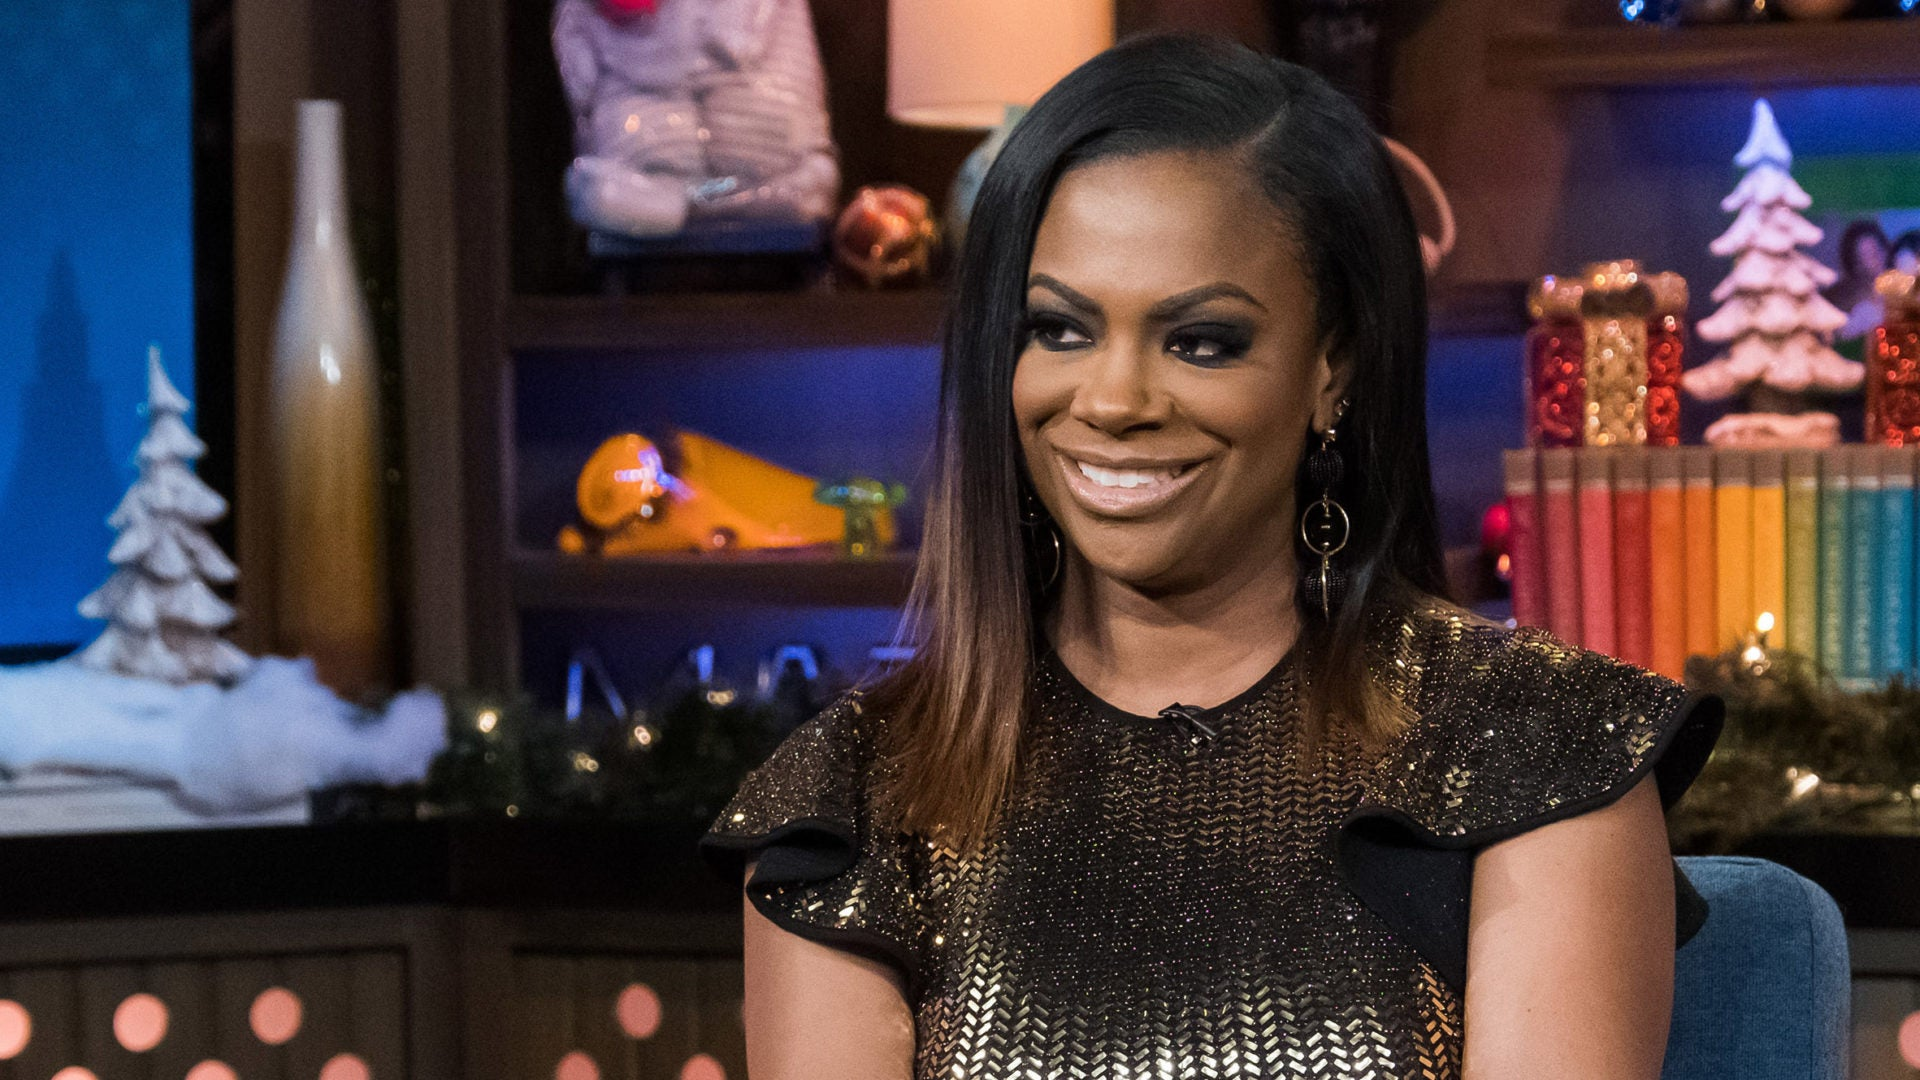 Kandi Burruss' Racy Red Outfit From Reginae Carter's Birthday Triggers Controversial Reactions